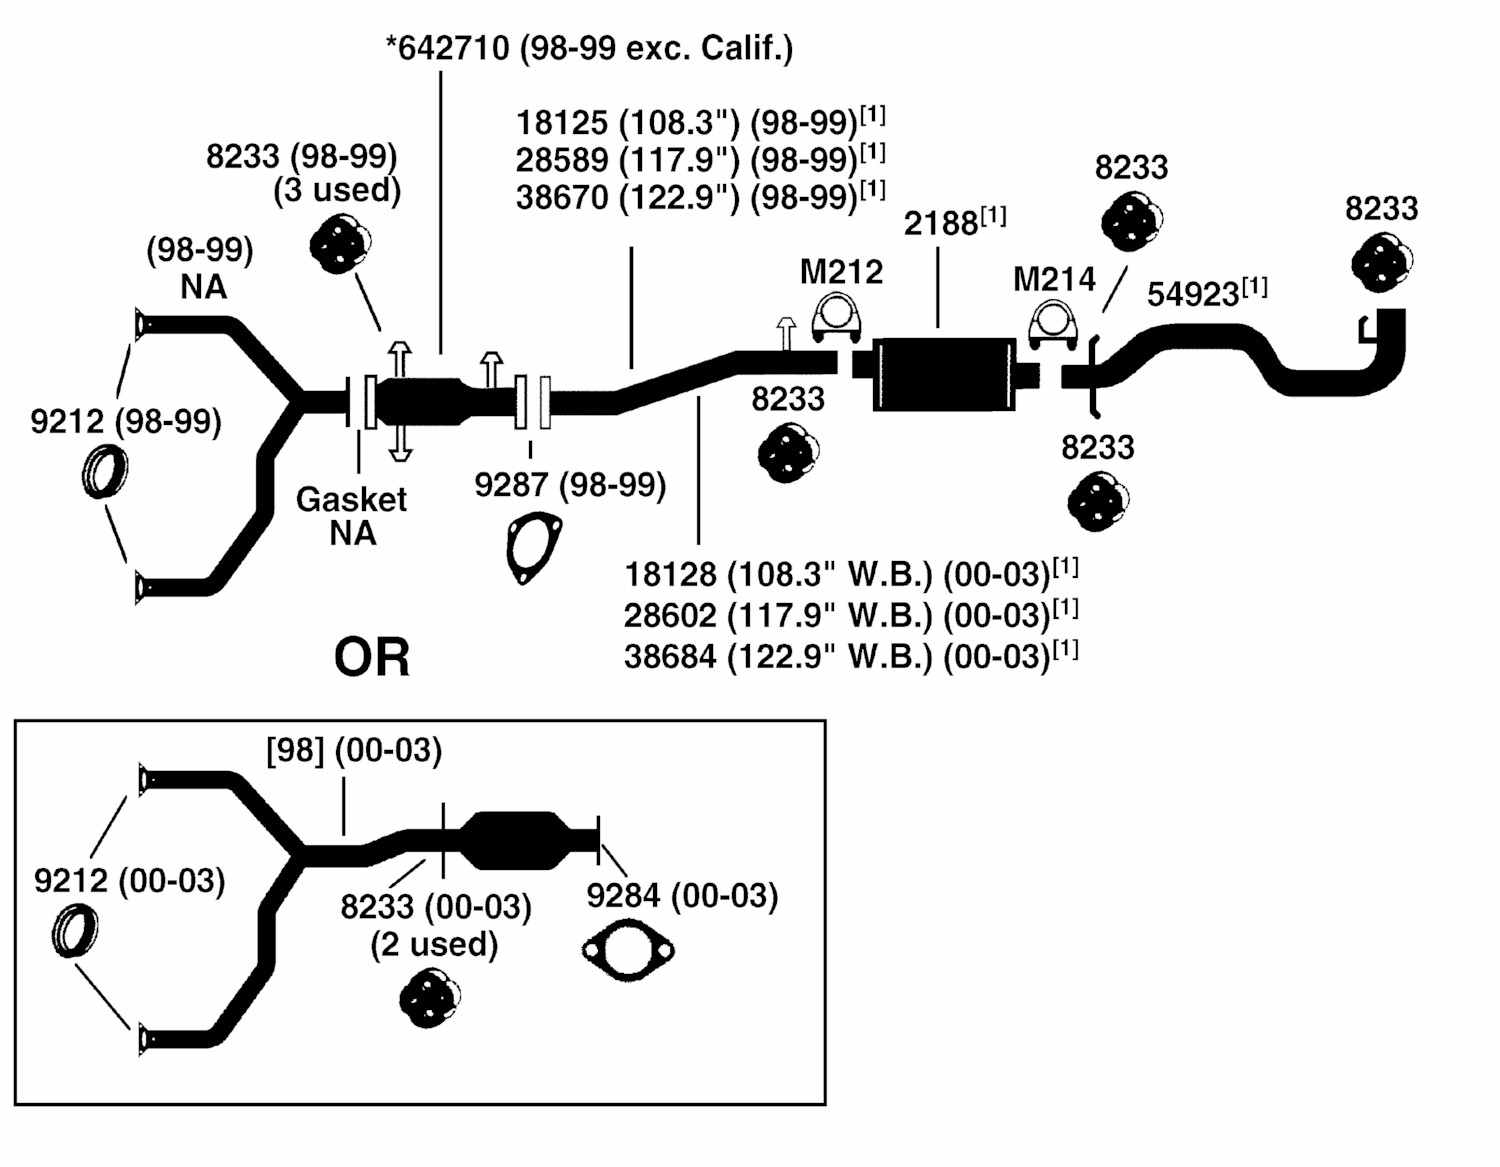 Chevy Cavalier Exhaust System Diagram Chevy Free Engine